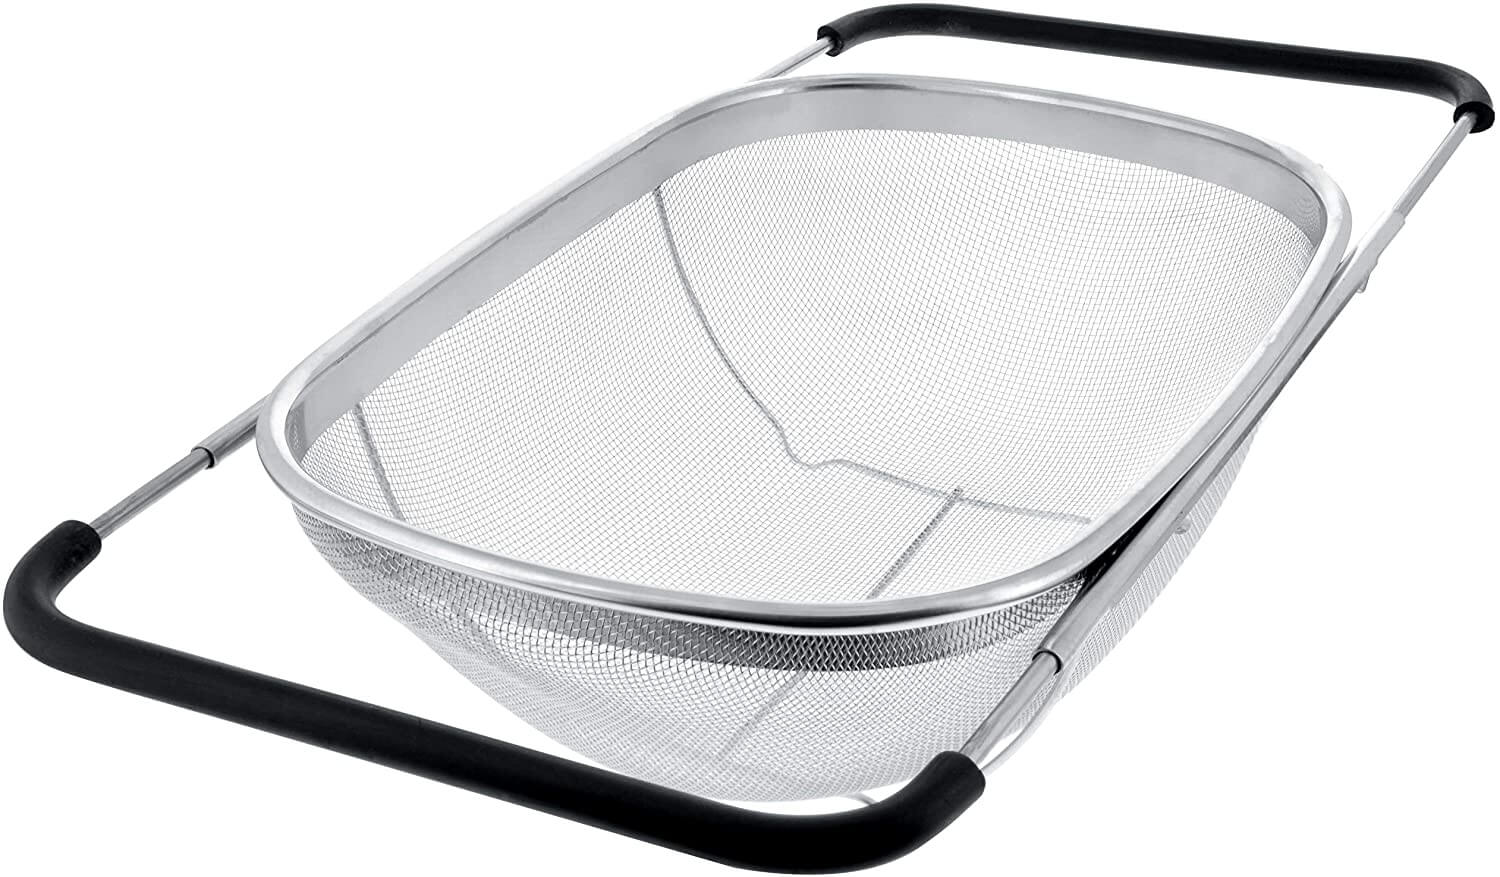 U.S. Kitchen Supply - Premium Quality Over the Sink Stainless Steel Oval Colander